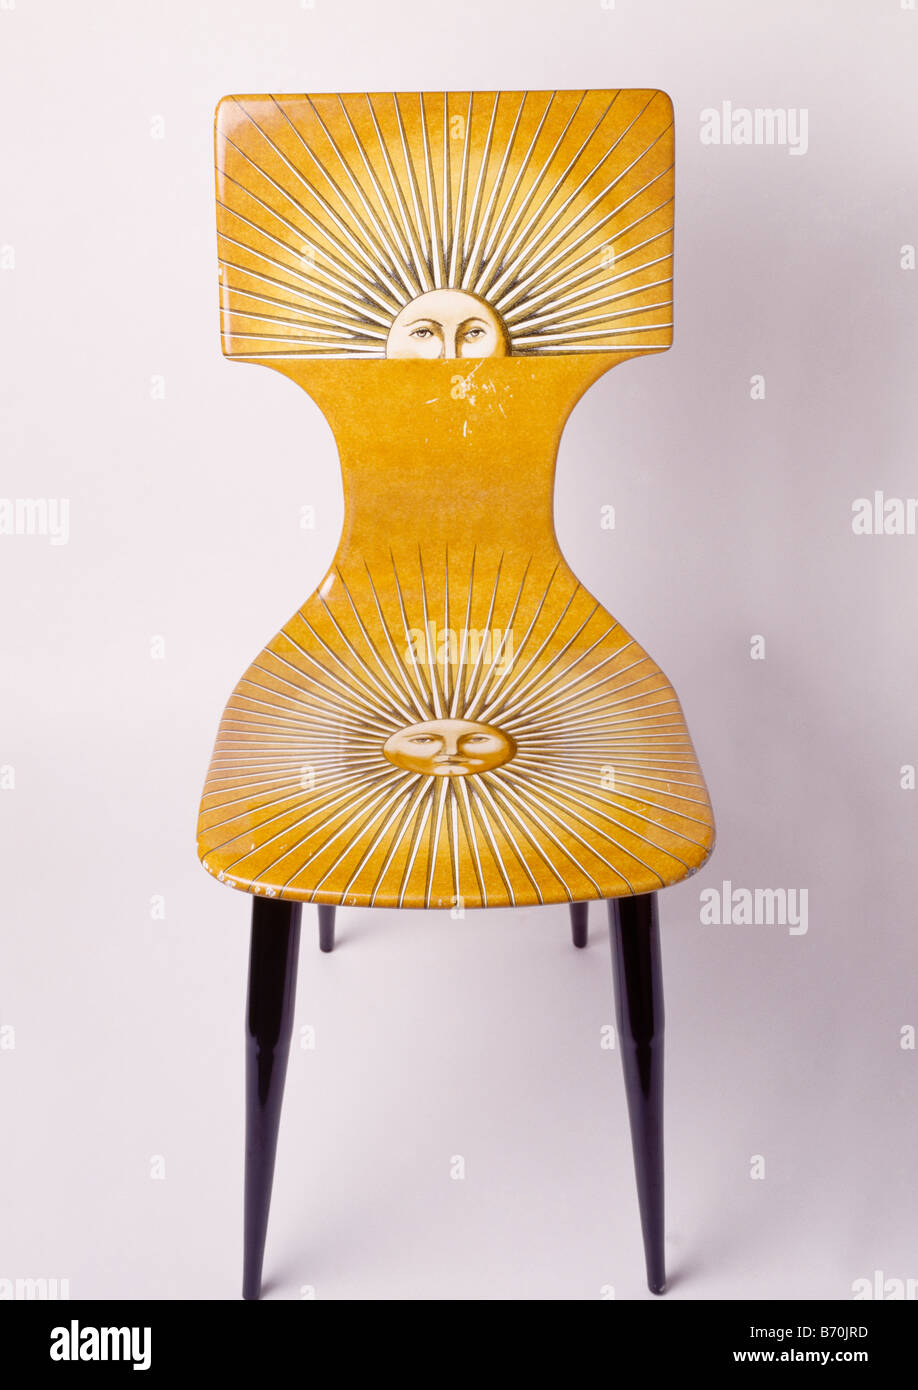 Close-up of yellow Fornasetti sunburst chair - Stock Image